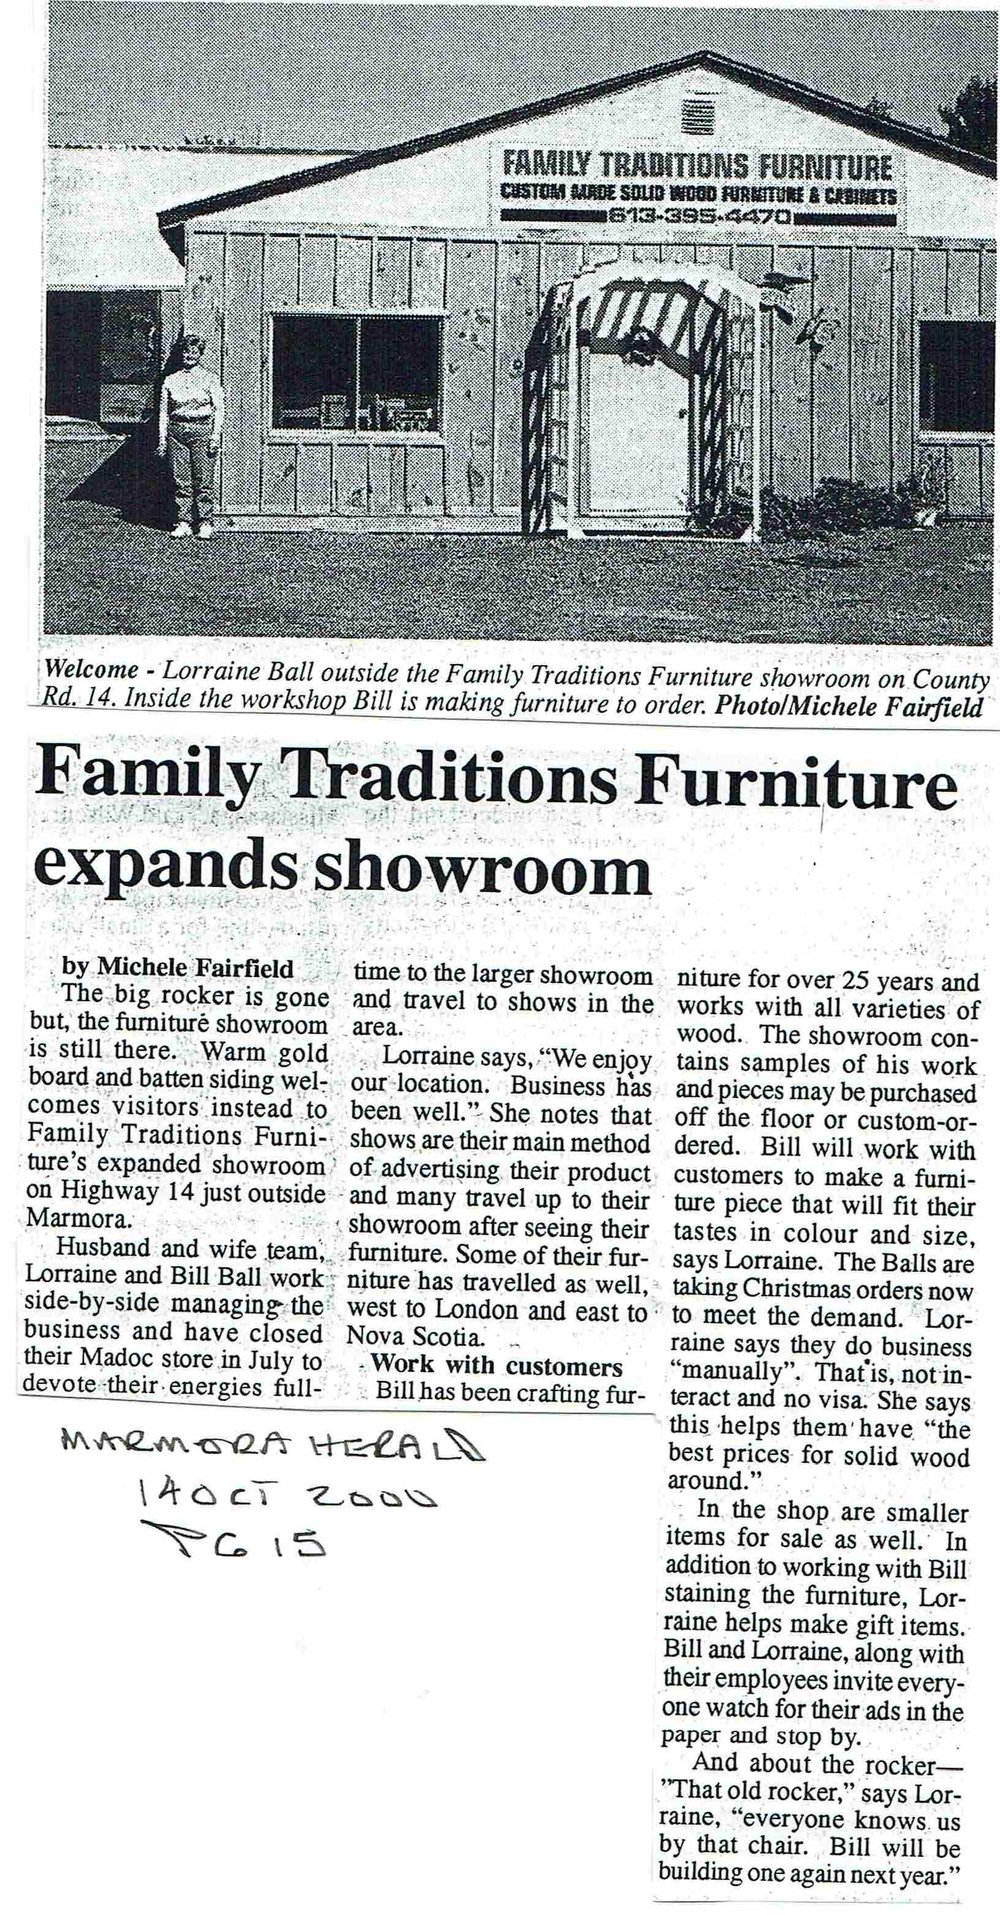 2000 Lorraine and Bill Ball Family Traditions furntiture.JPG